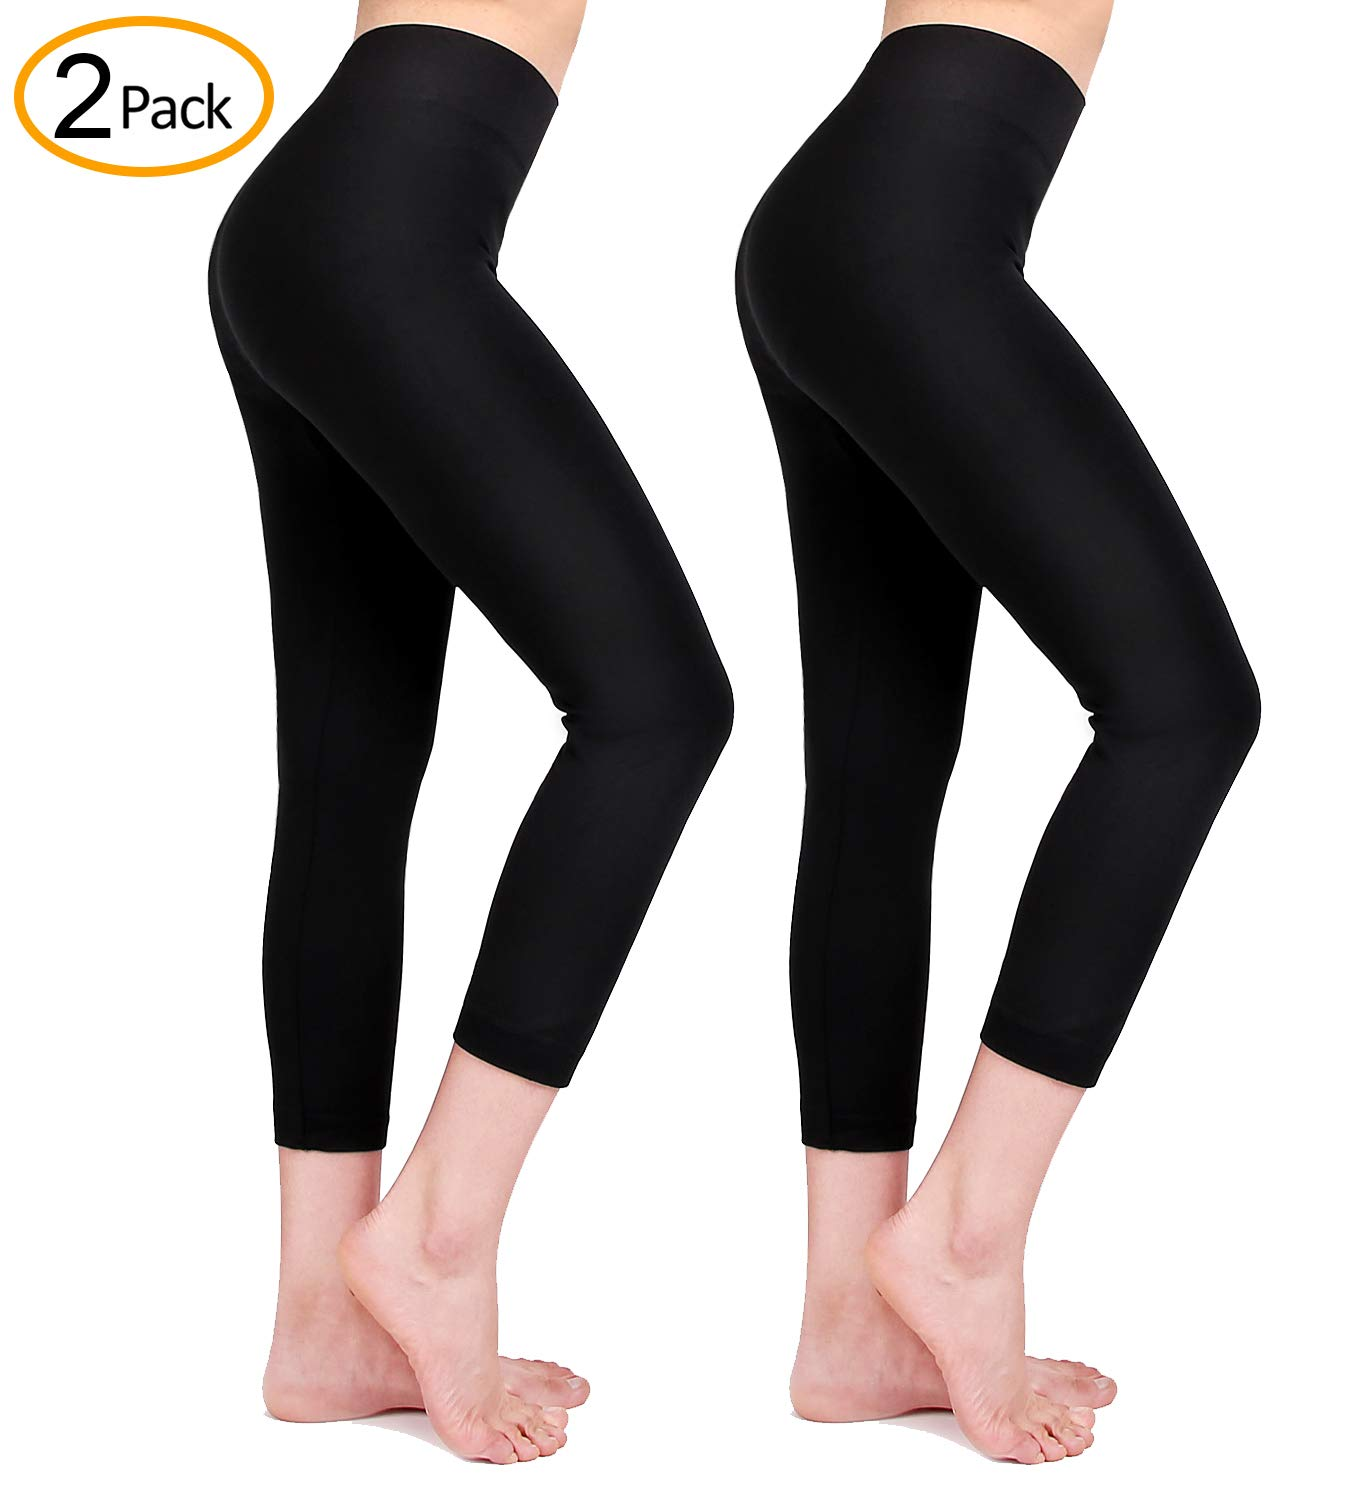 Moon Wood Extra Soft Capri Leggings for Women with High Waist, Seamless Workout Leggings -Regular and Plus Size (Black+Black, Large)